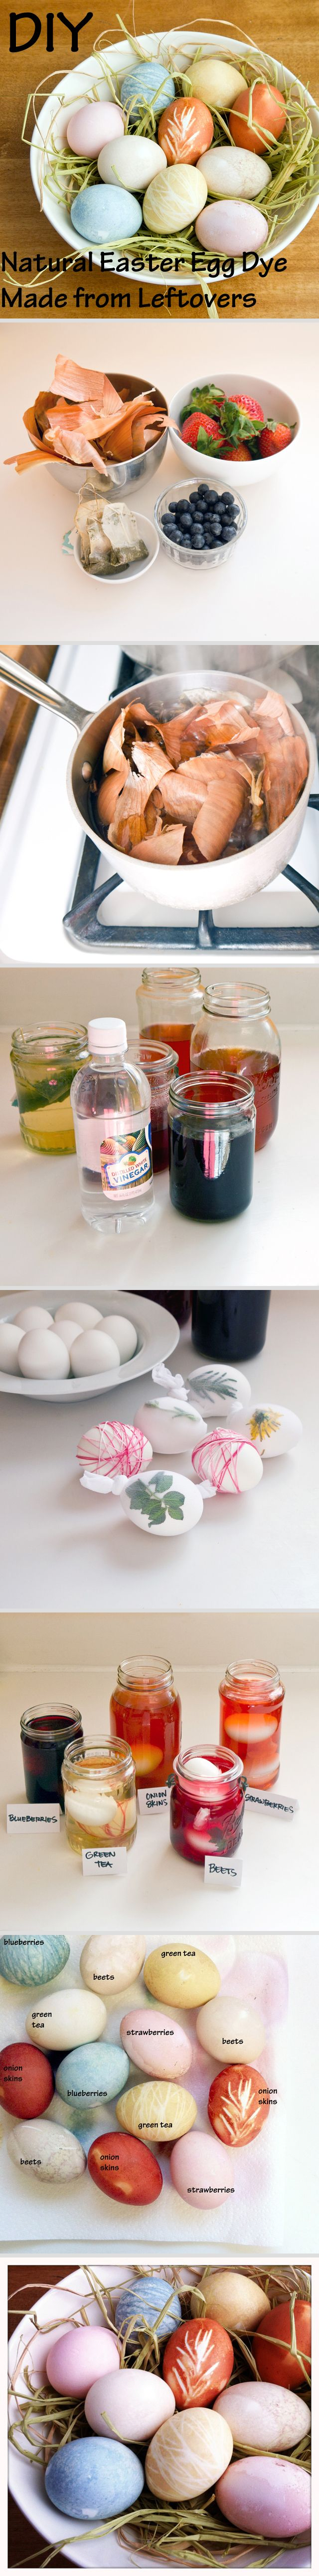 Teach your kids how to be eco-friendly and dye Easter eggs with leftovers this year!